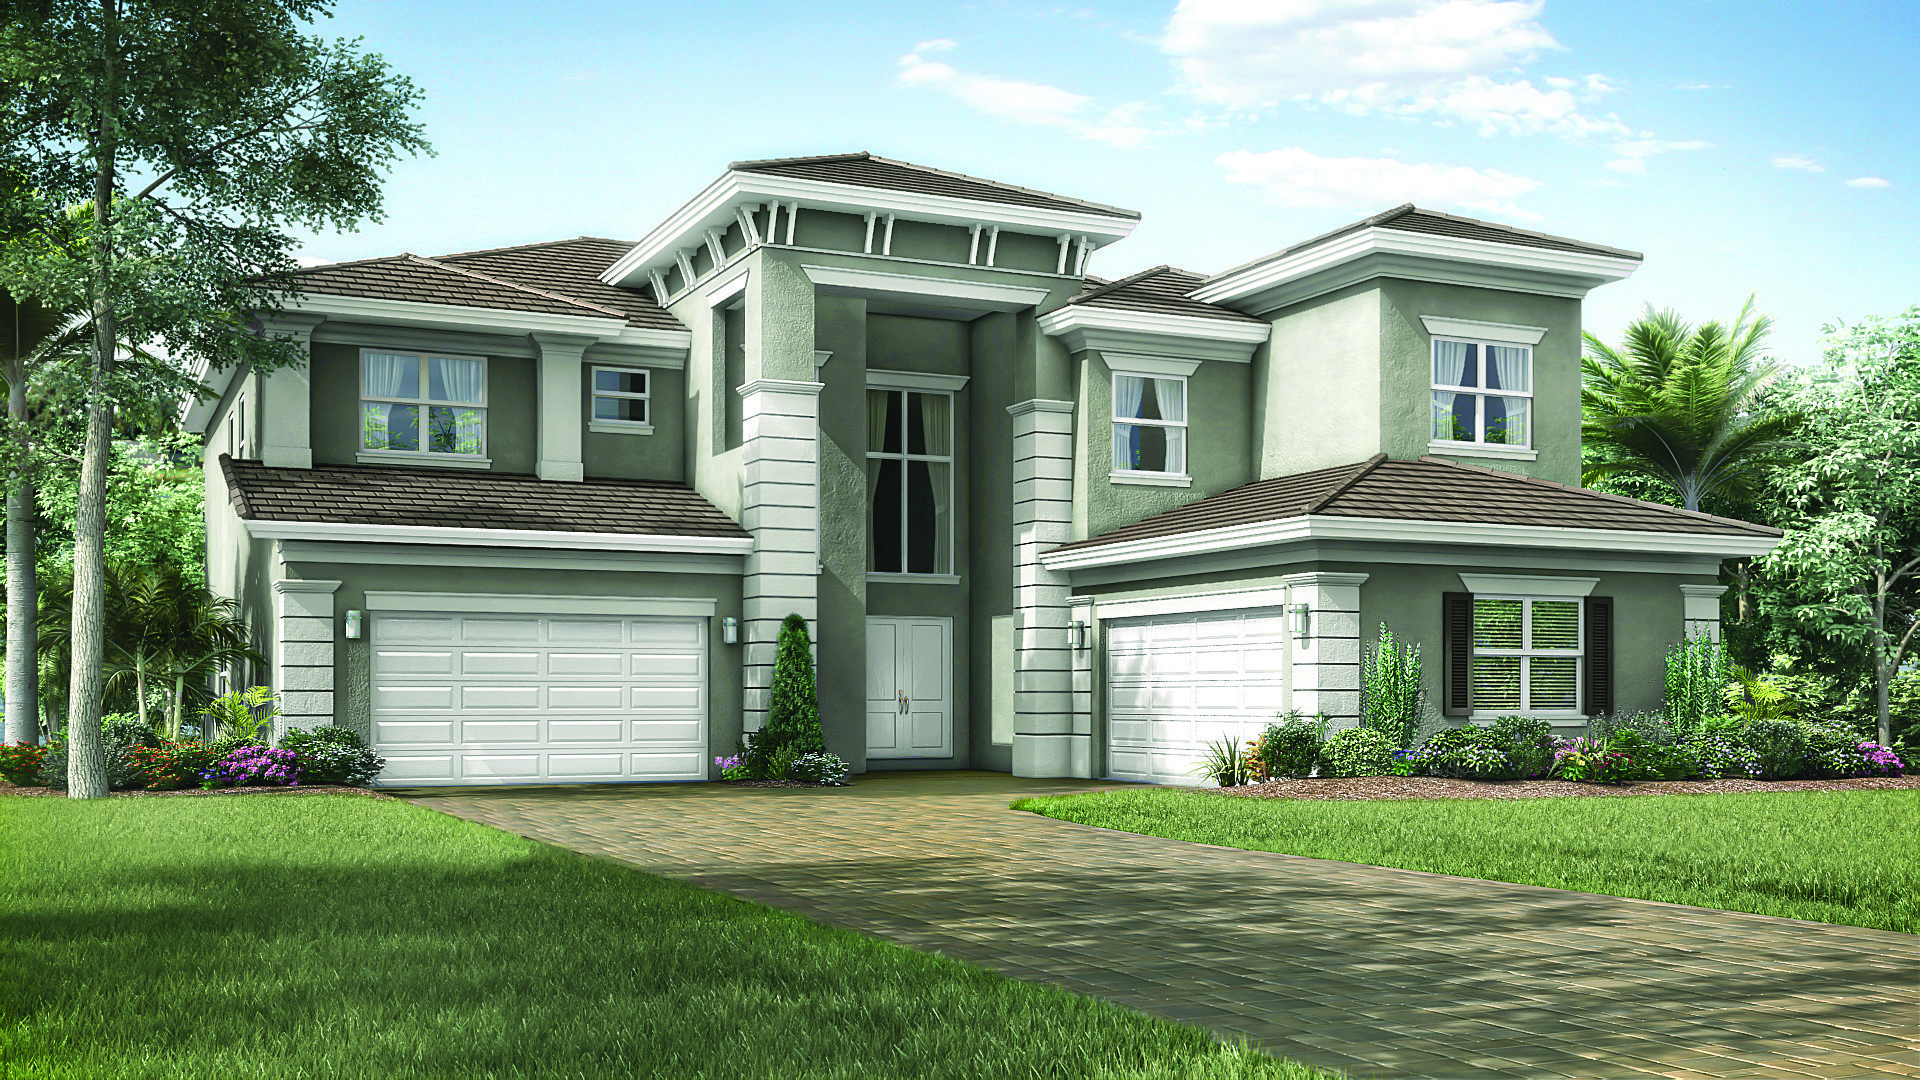 GL Homes to start sales at two projects in Palm Beach County - Sun ...